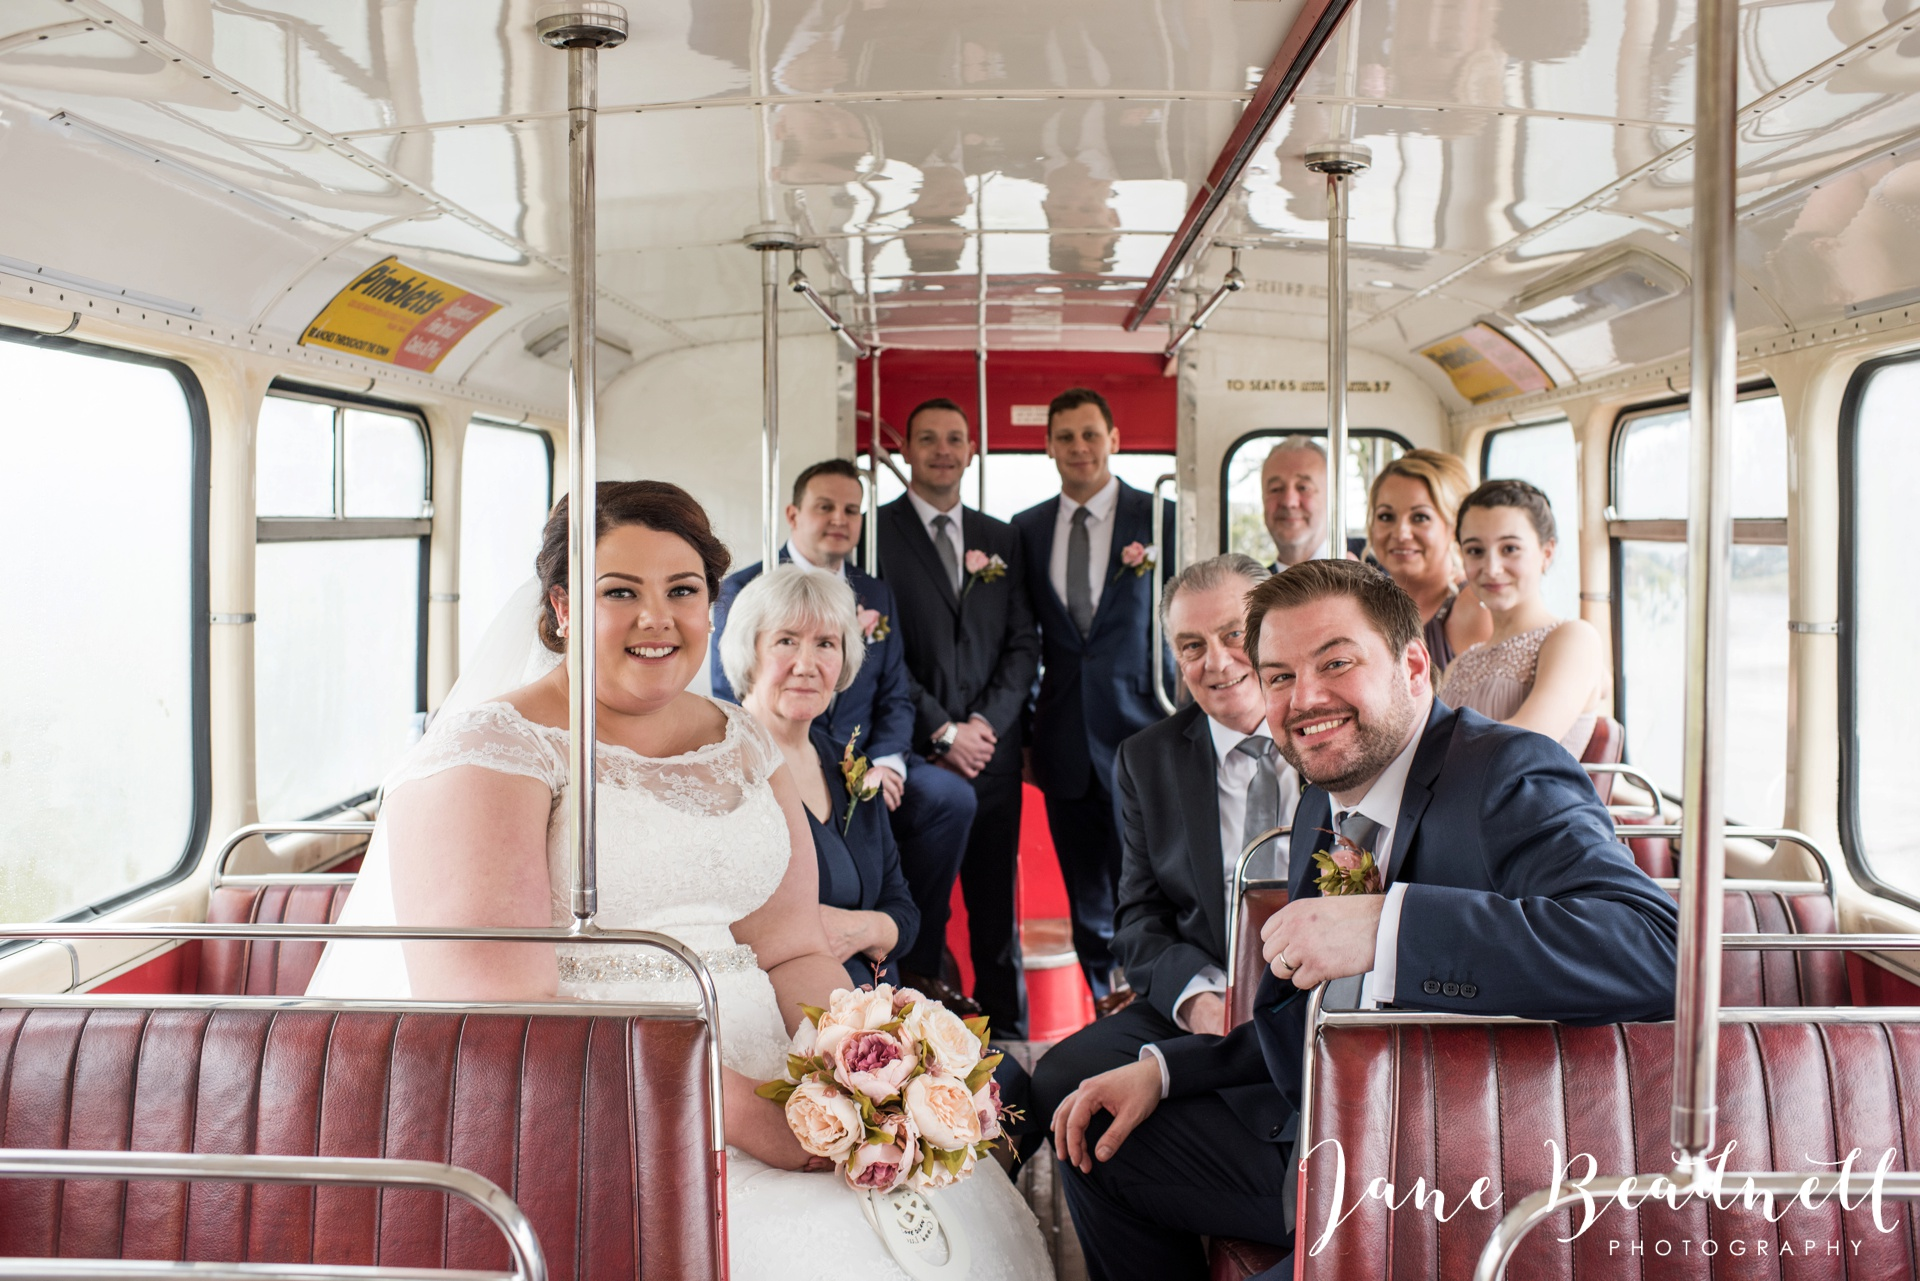 Cracoe Village Hall Wedding Photography by Jane Beadnell Photography fine art wedding photographer Yorkshire_0025